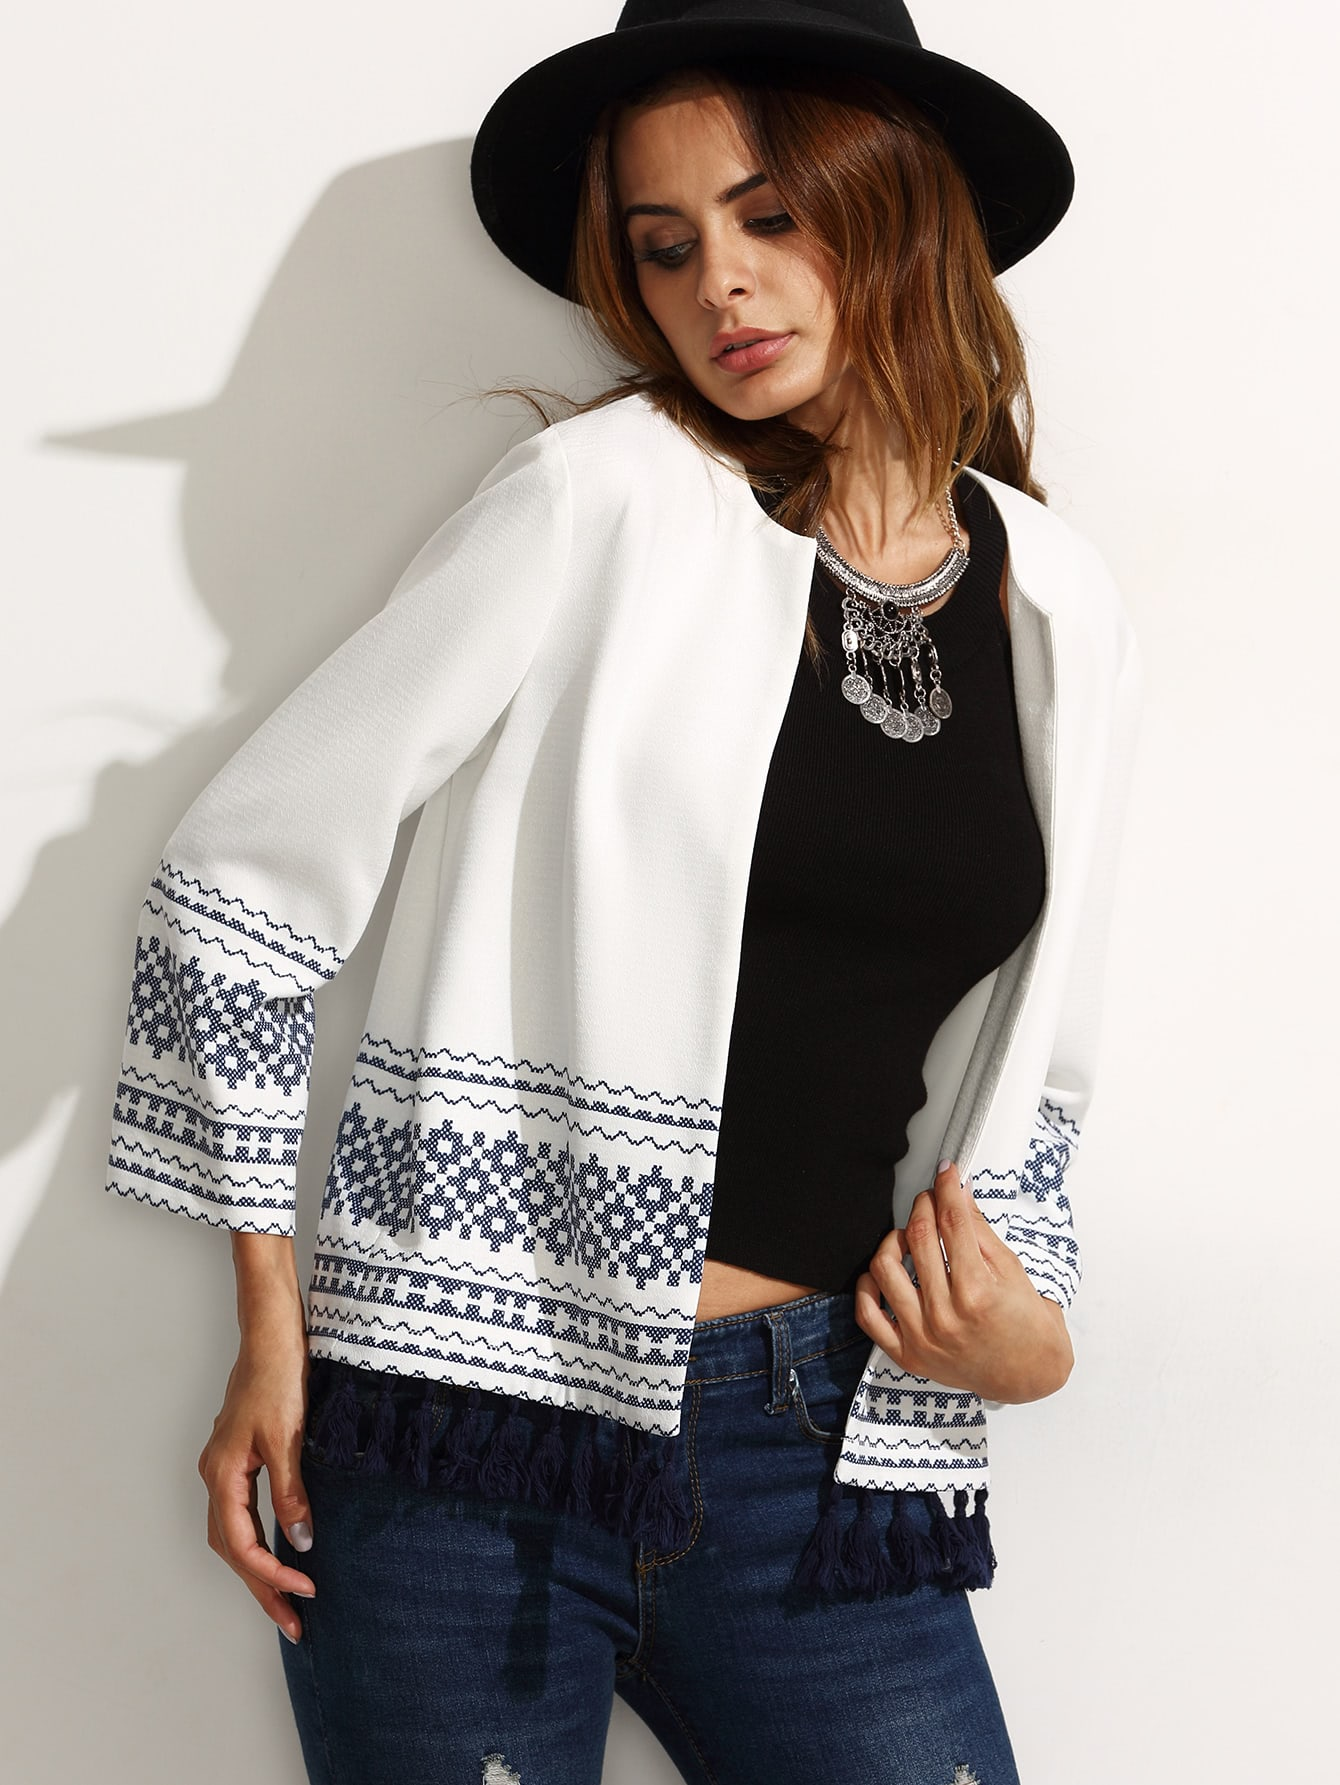 White Print Long Sleeve Tassel Trim Cardigan Outerwear outer160711721